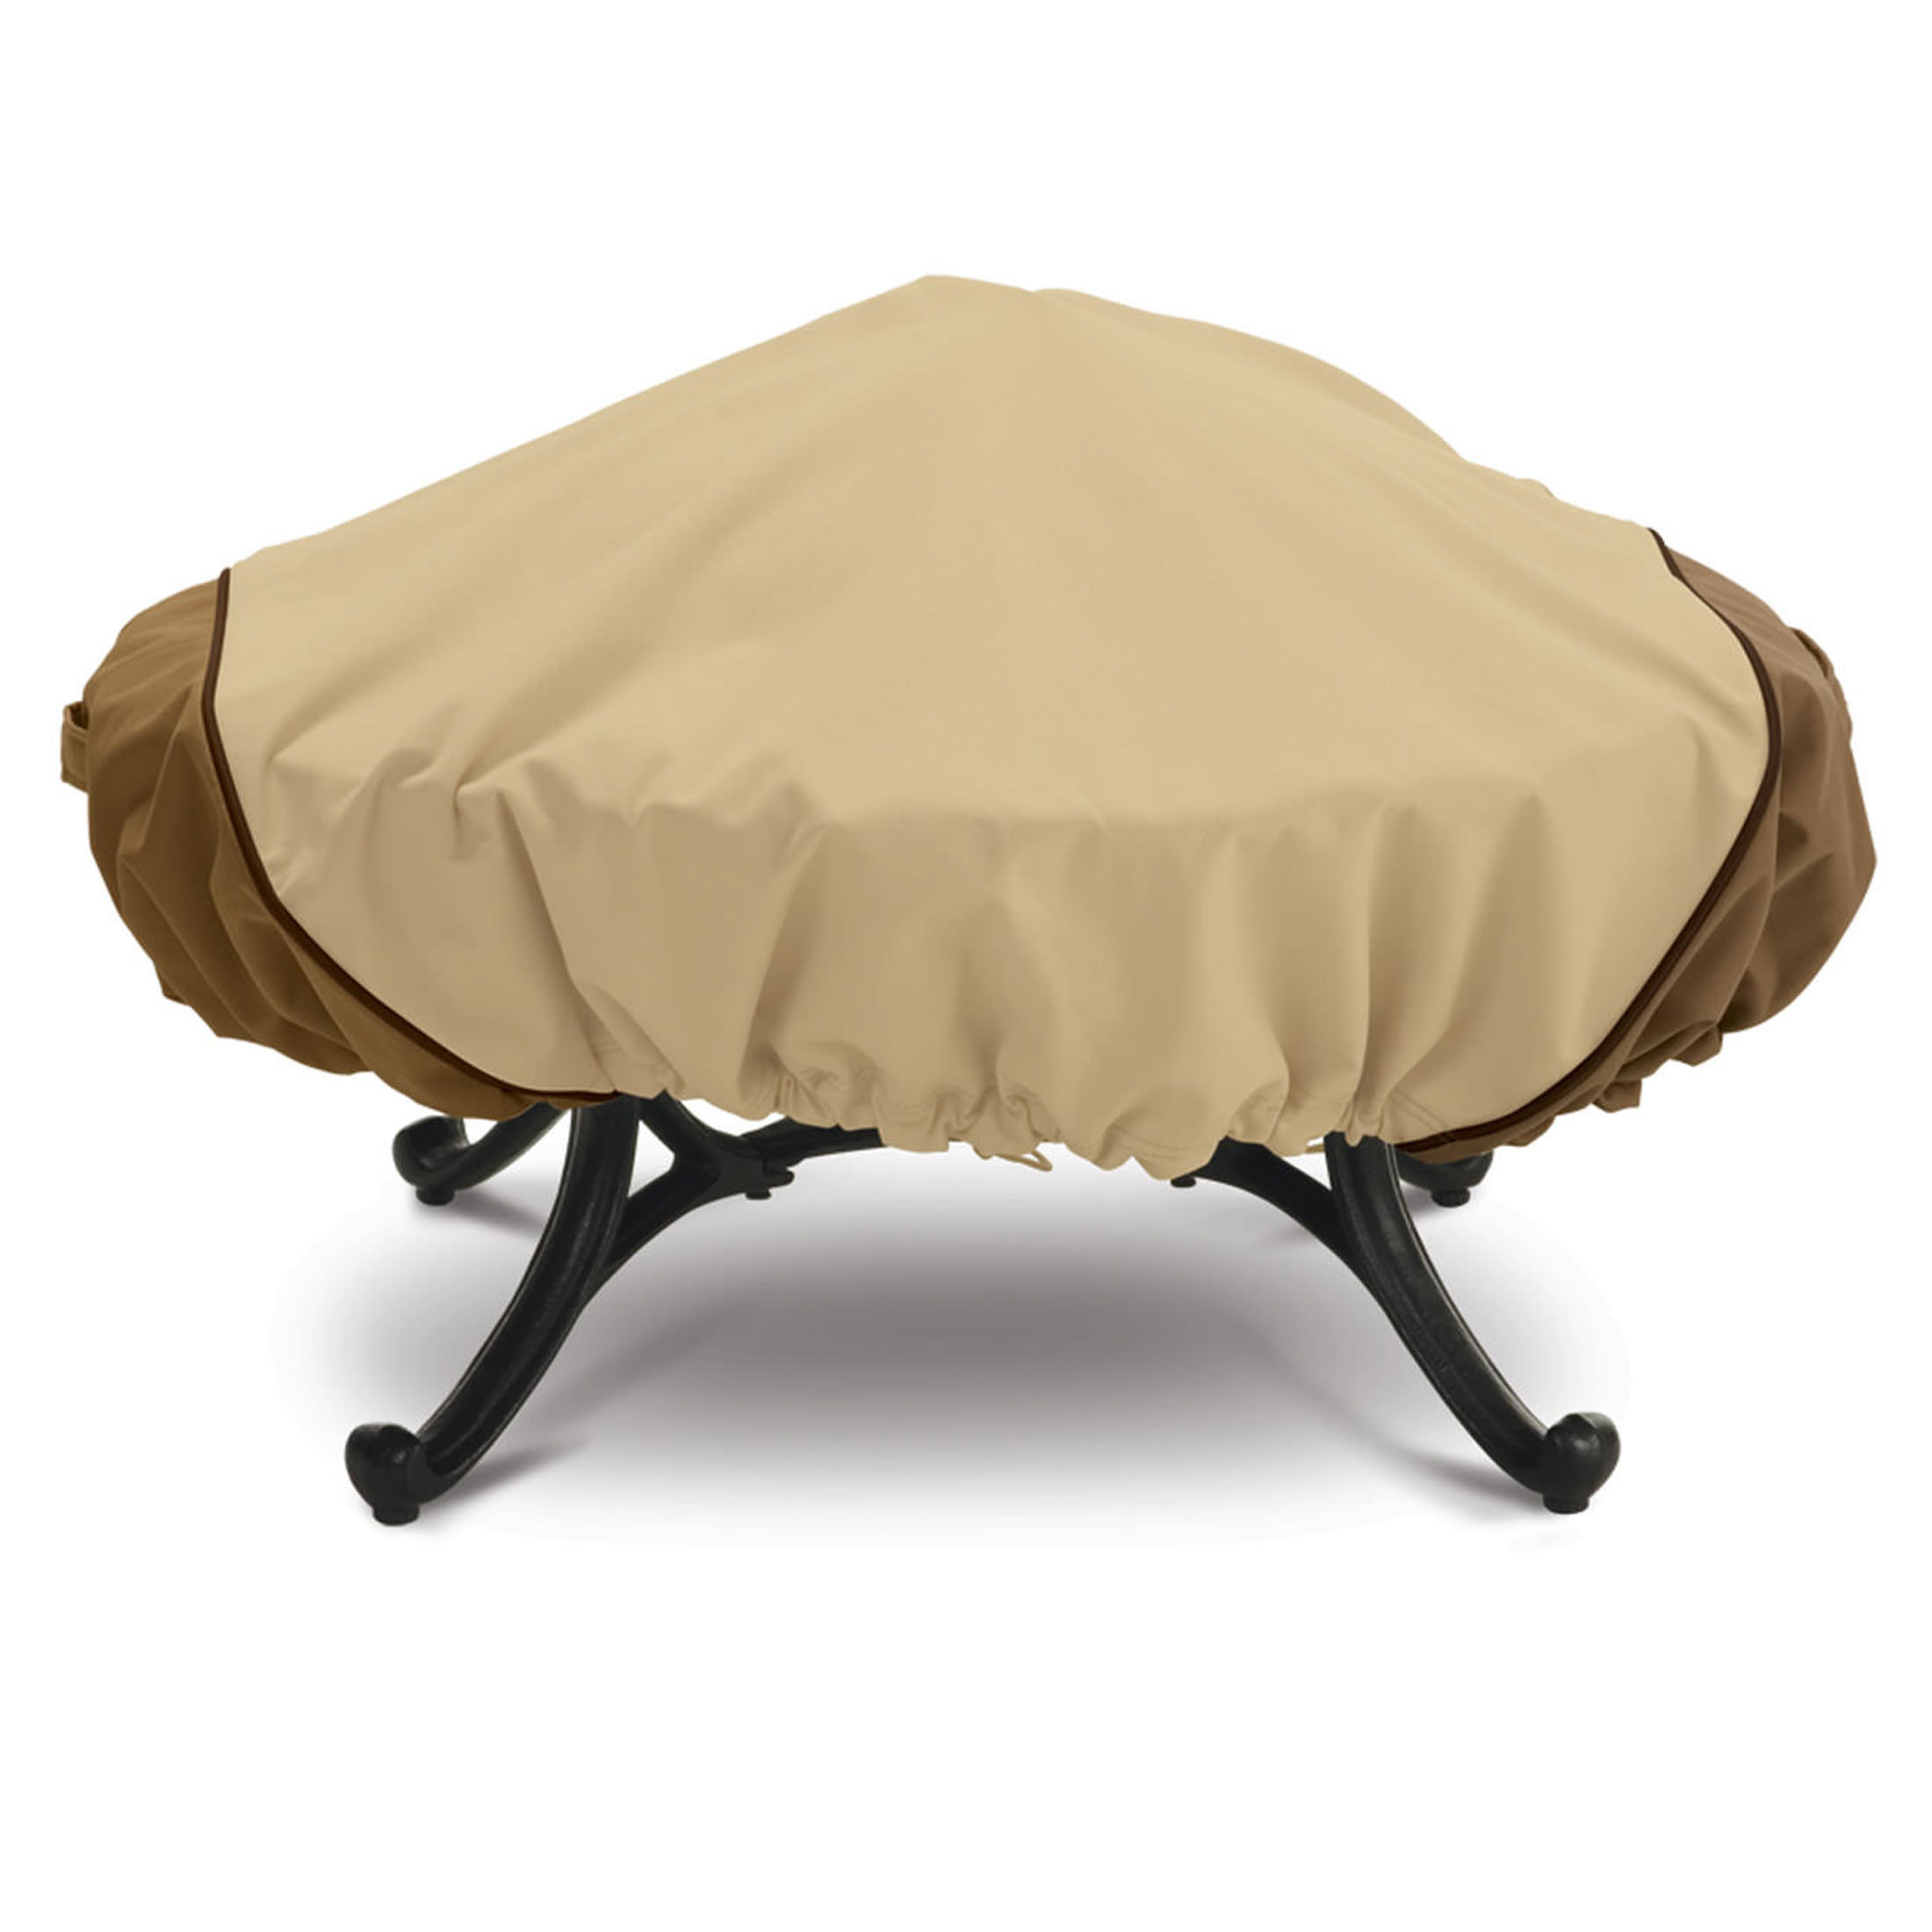 Classic Accessories Veranda Large Fire Pit Cover